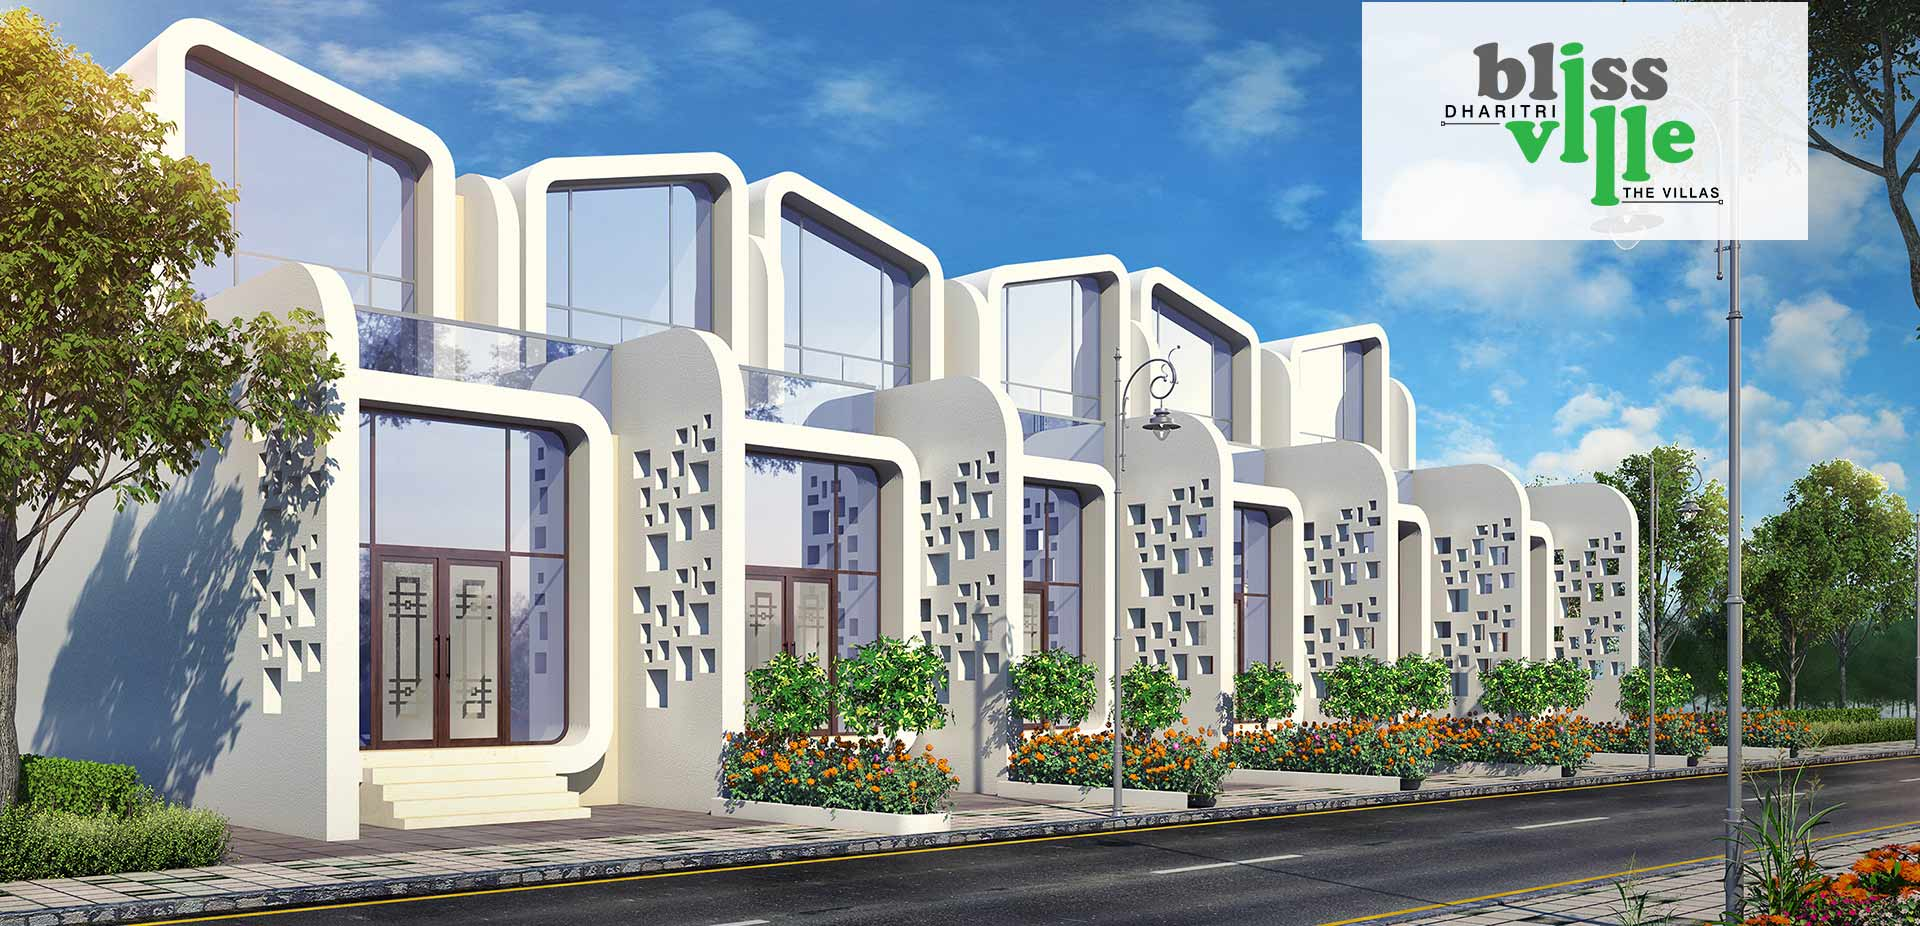 Dharitri Bliss Ville is one of the residential developments of Dharitri Infraventure, located in Kolkata.